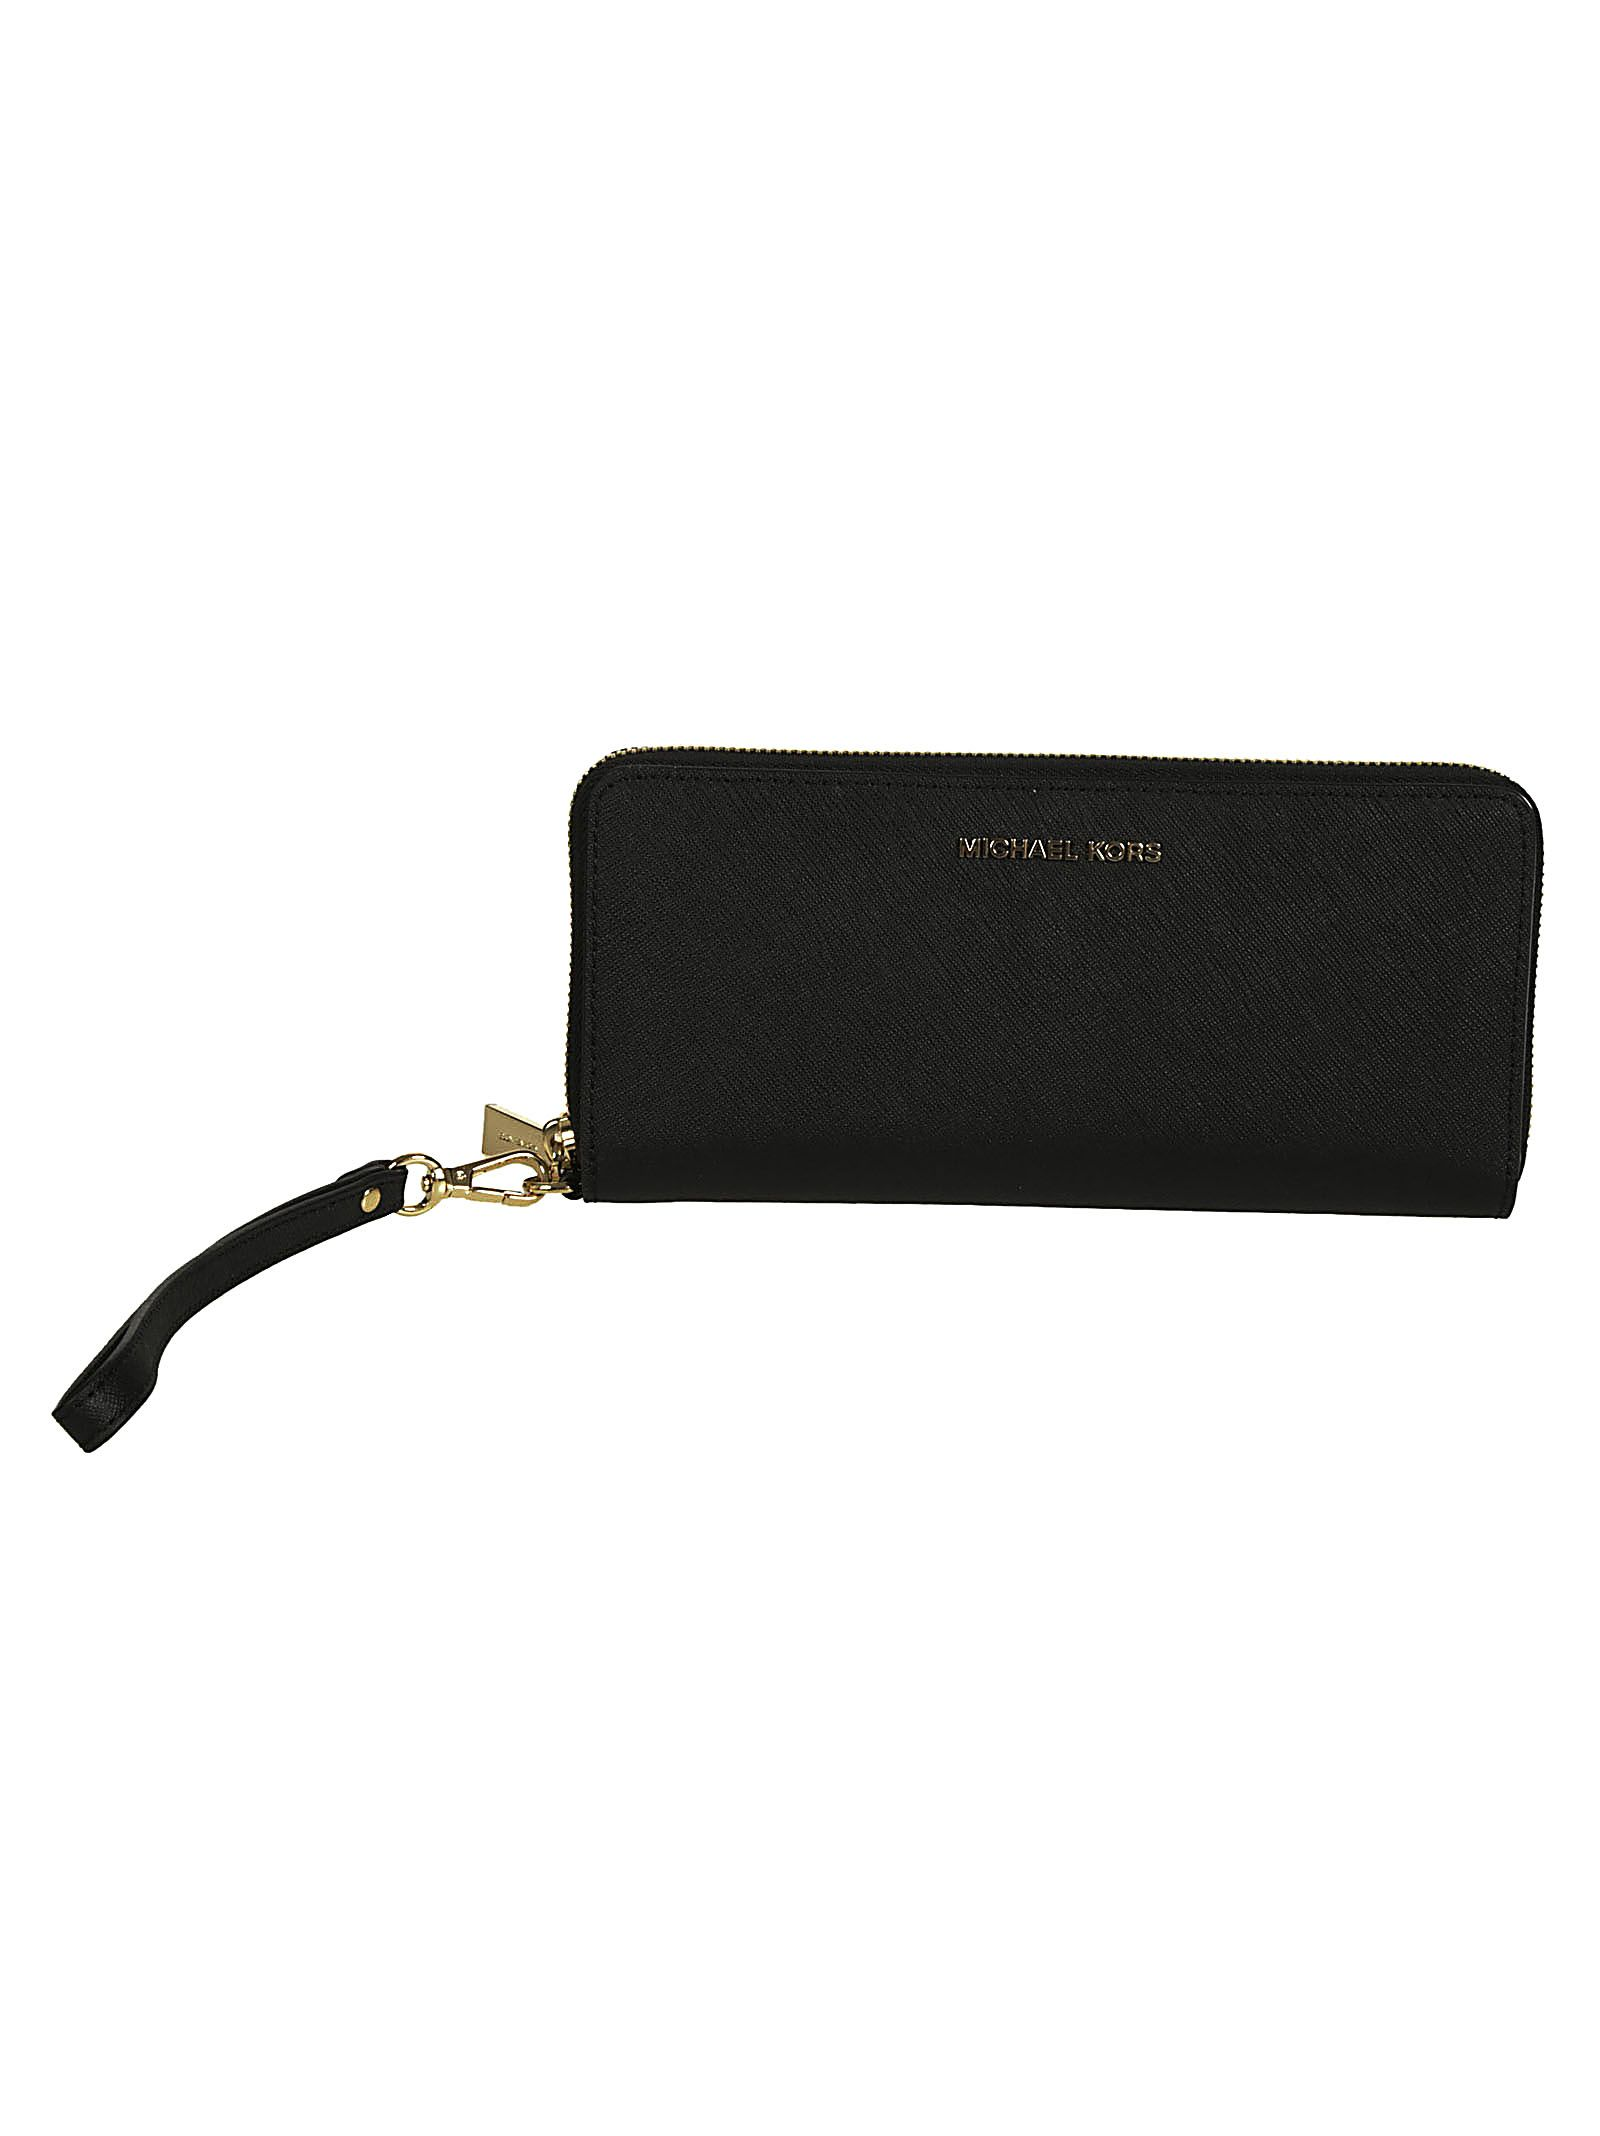 Michael Kors Jet Set Travel Zip Around Wallet 10574992